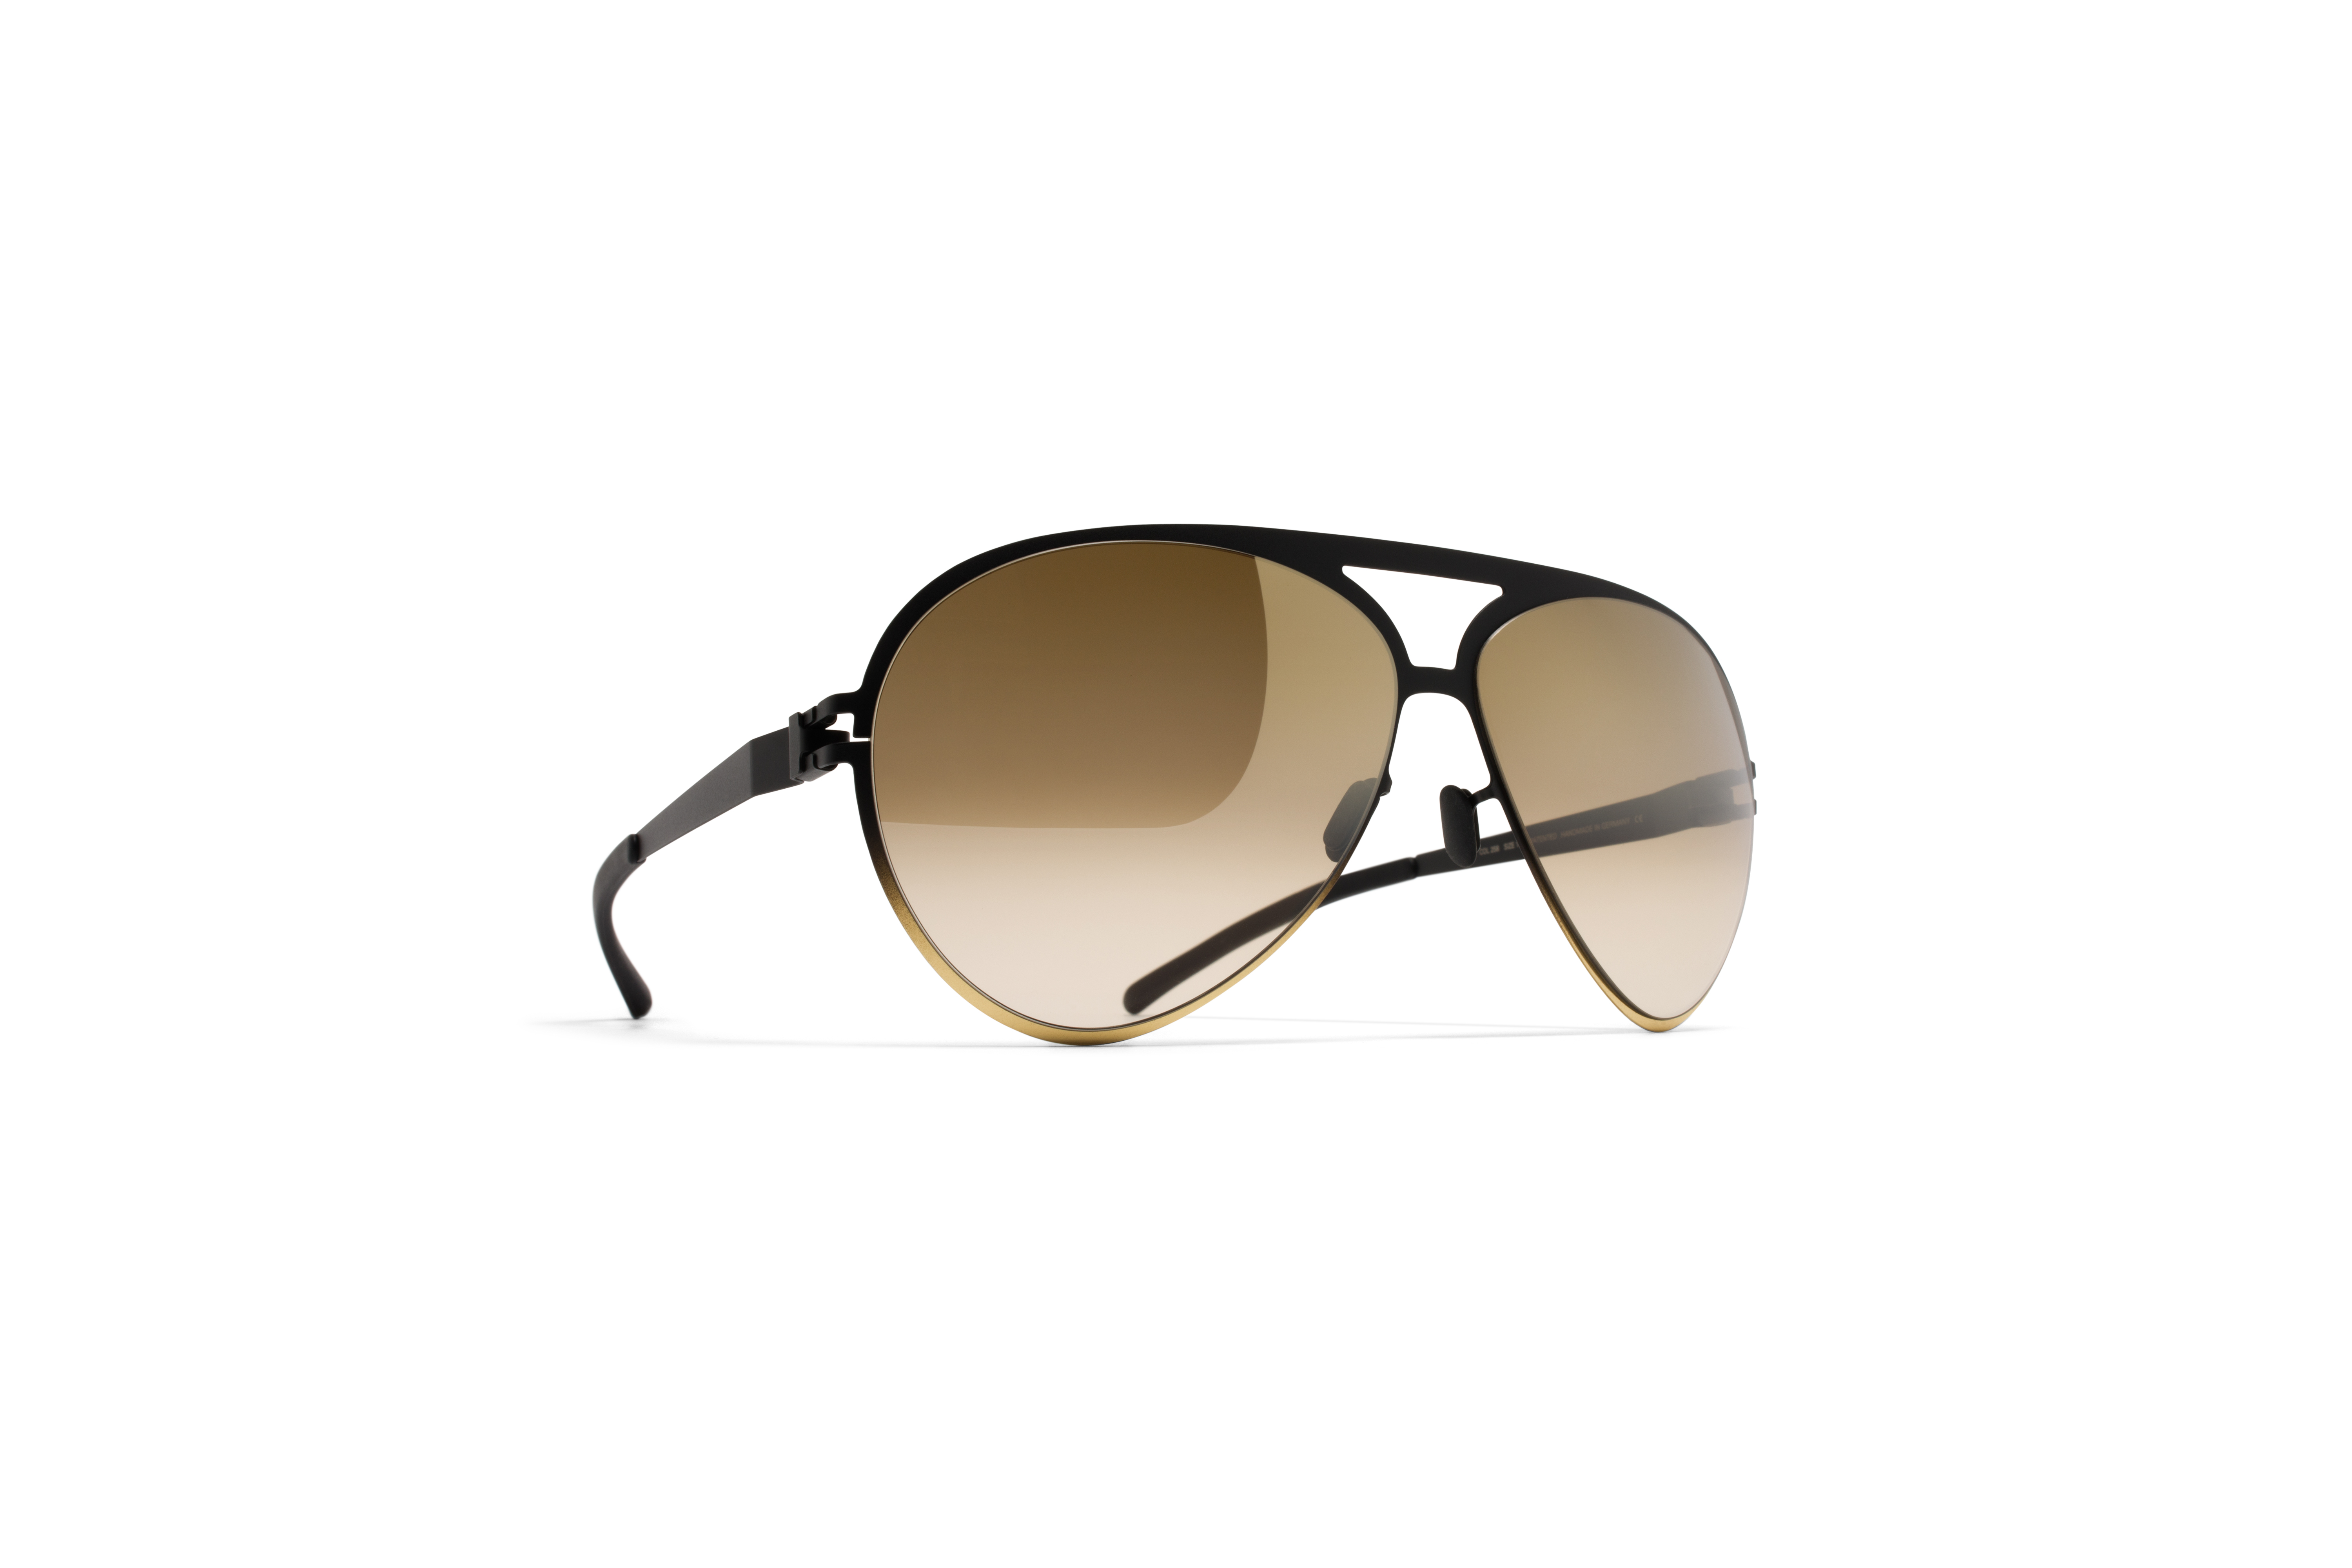 MYKITA Bw Sun Sepp F67 Black Gold Brown Gradient F56fbf6e6102d3